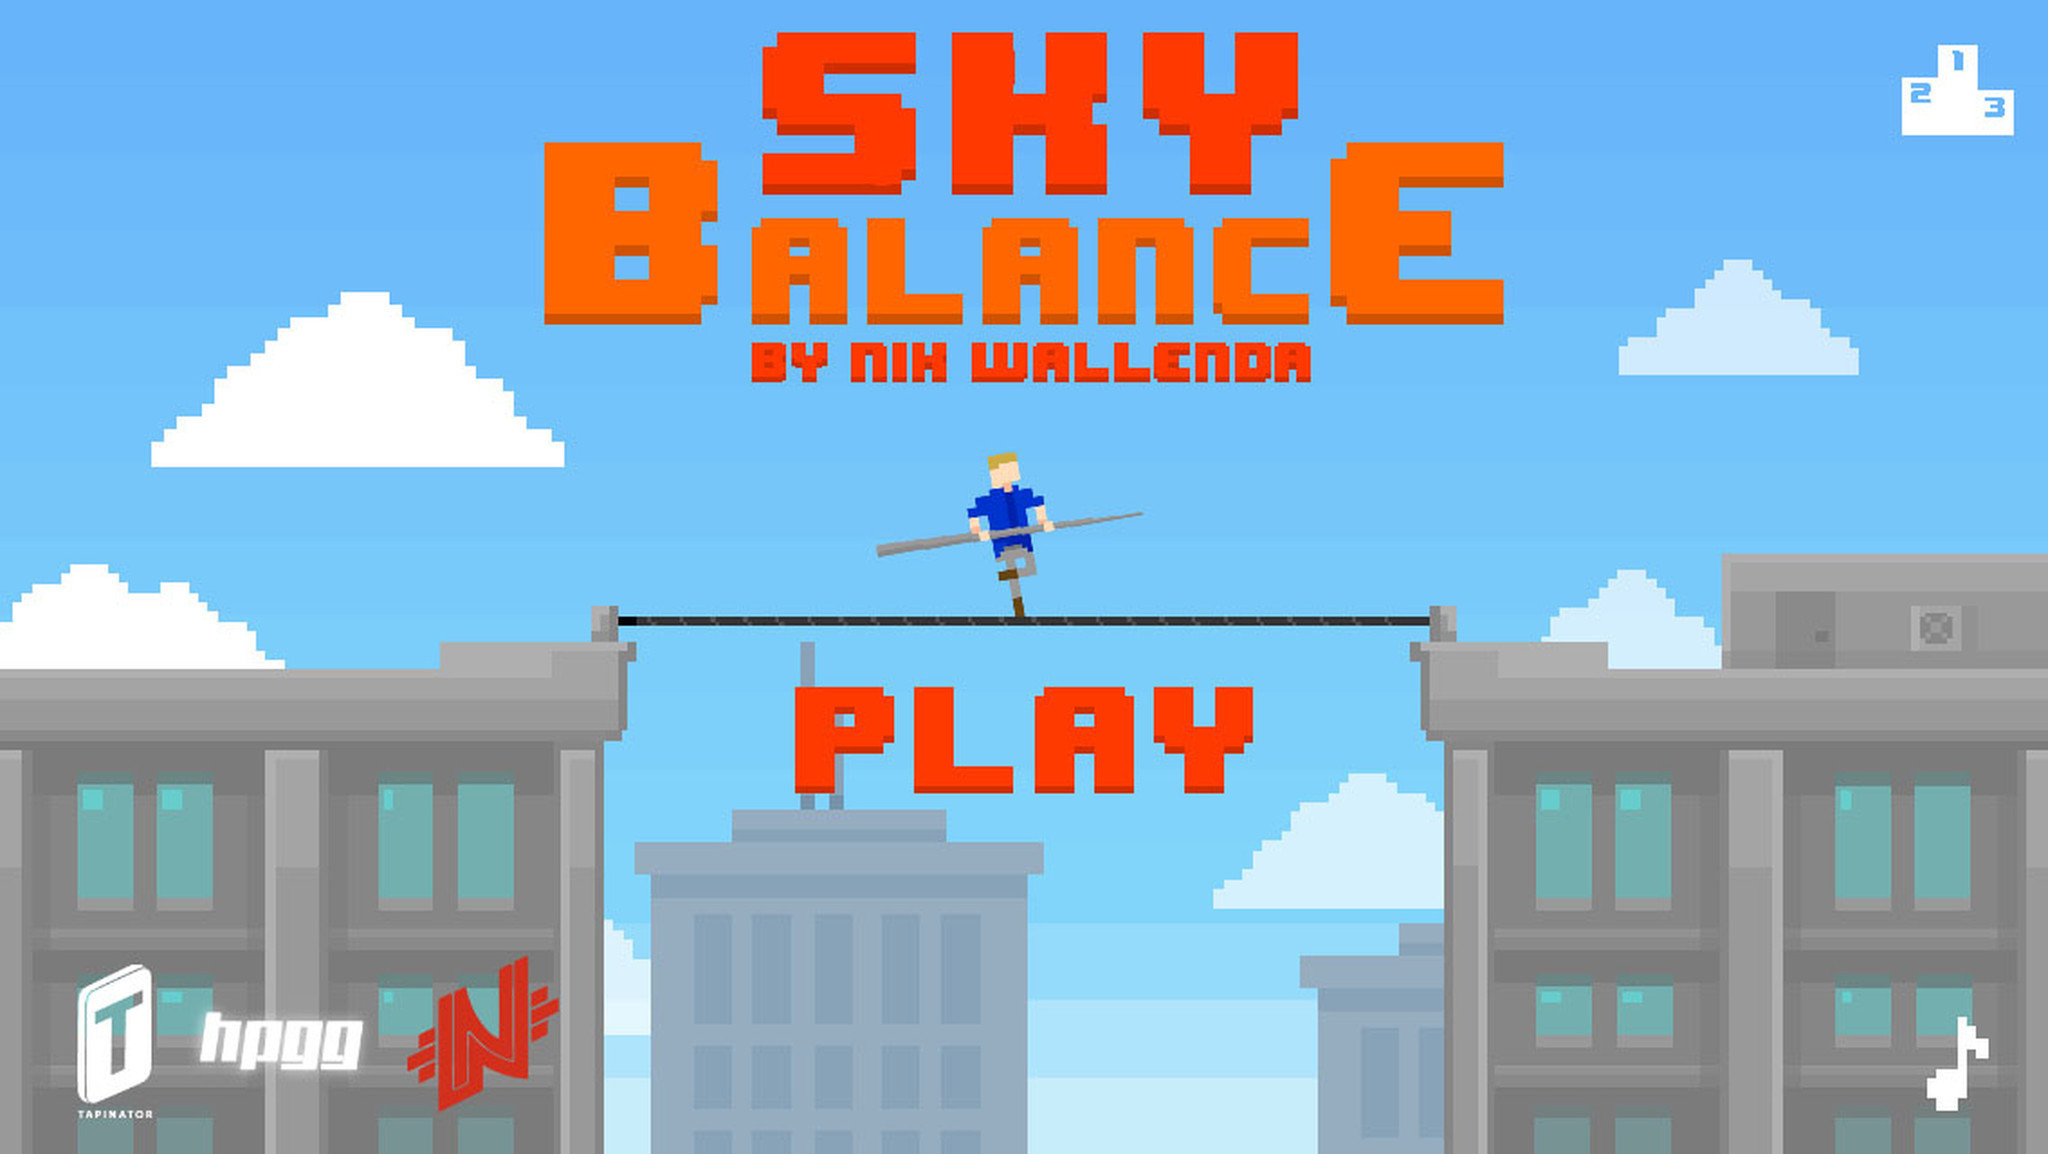 SkyBalance by Nik Wallenda: The game app before the walk